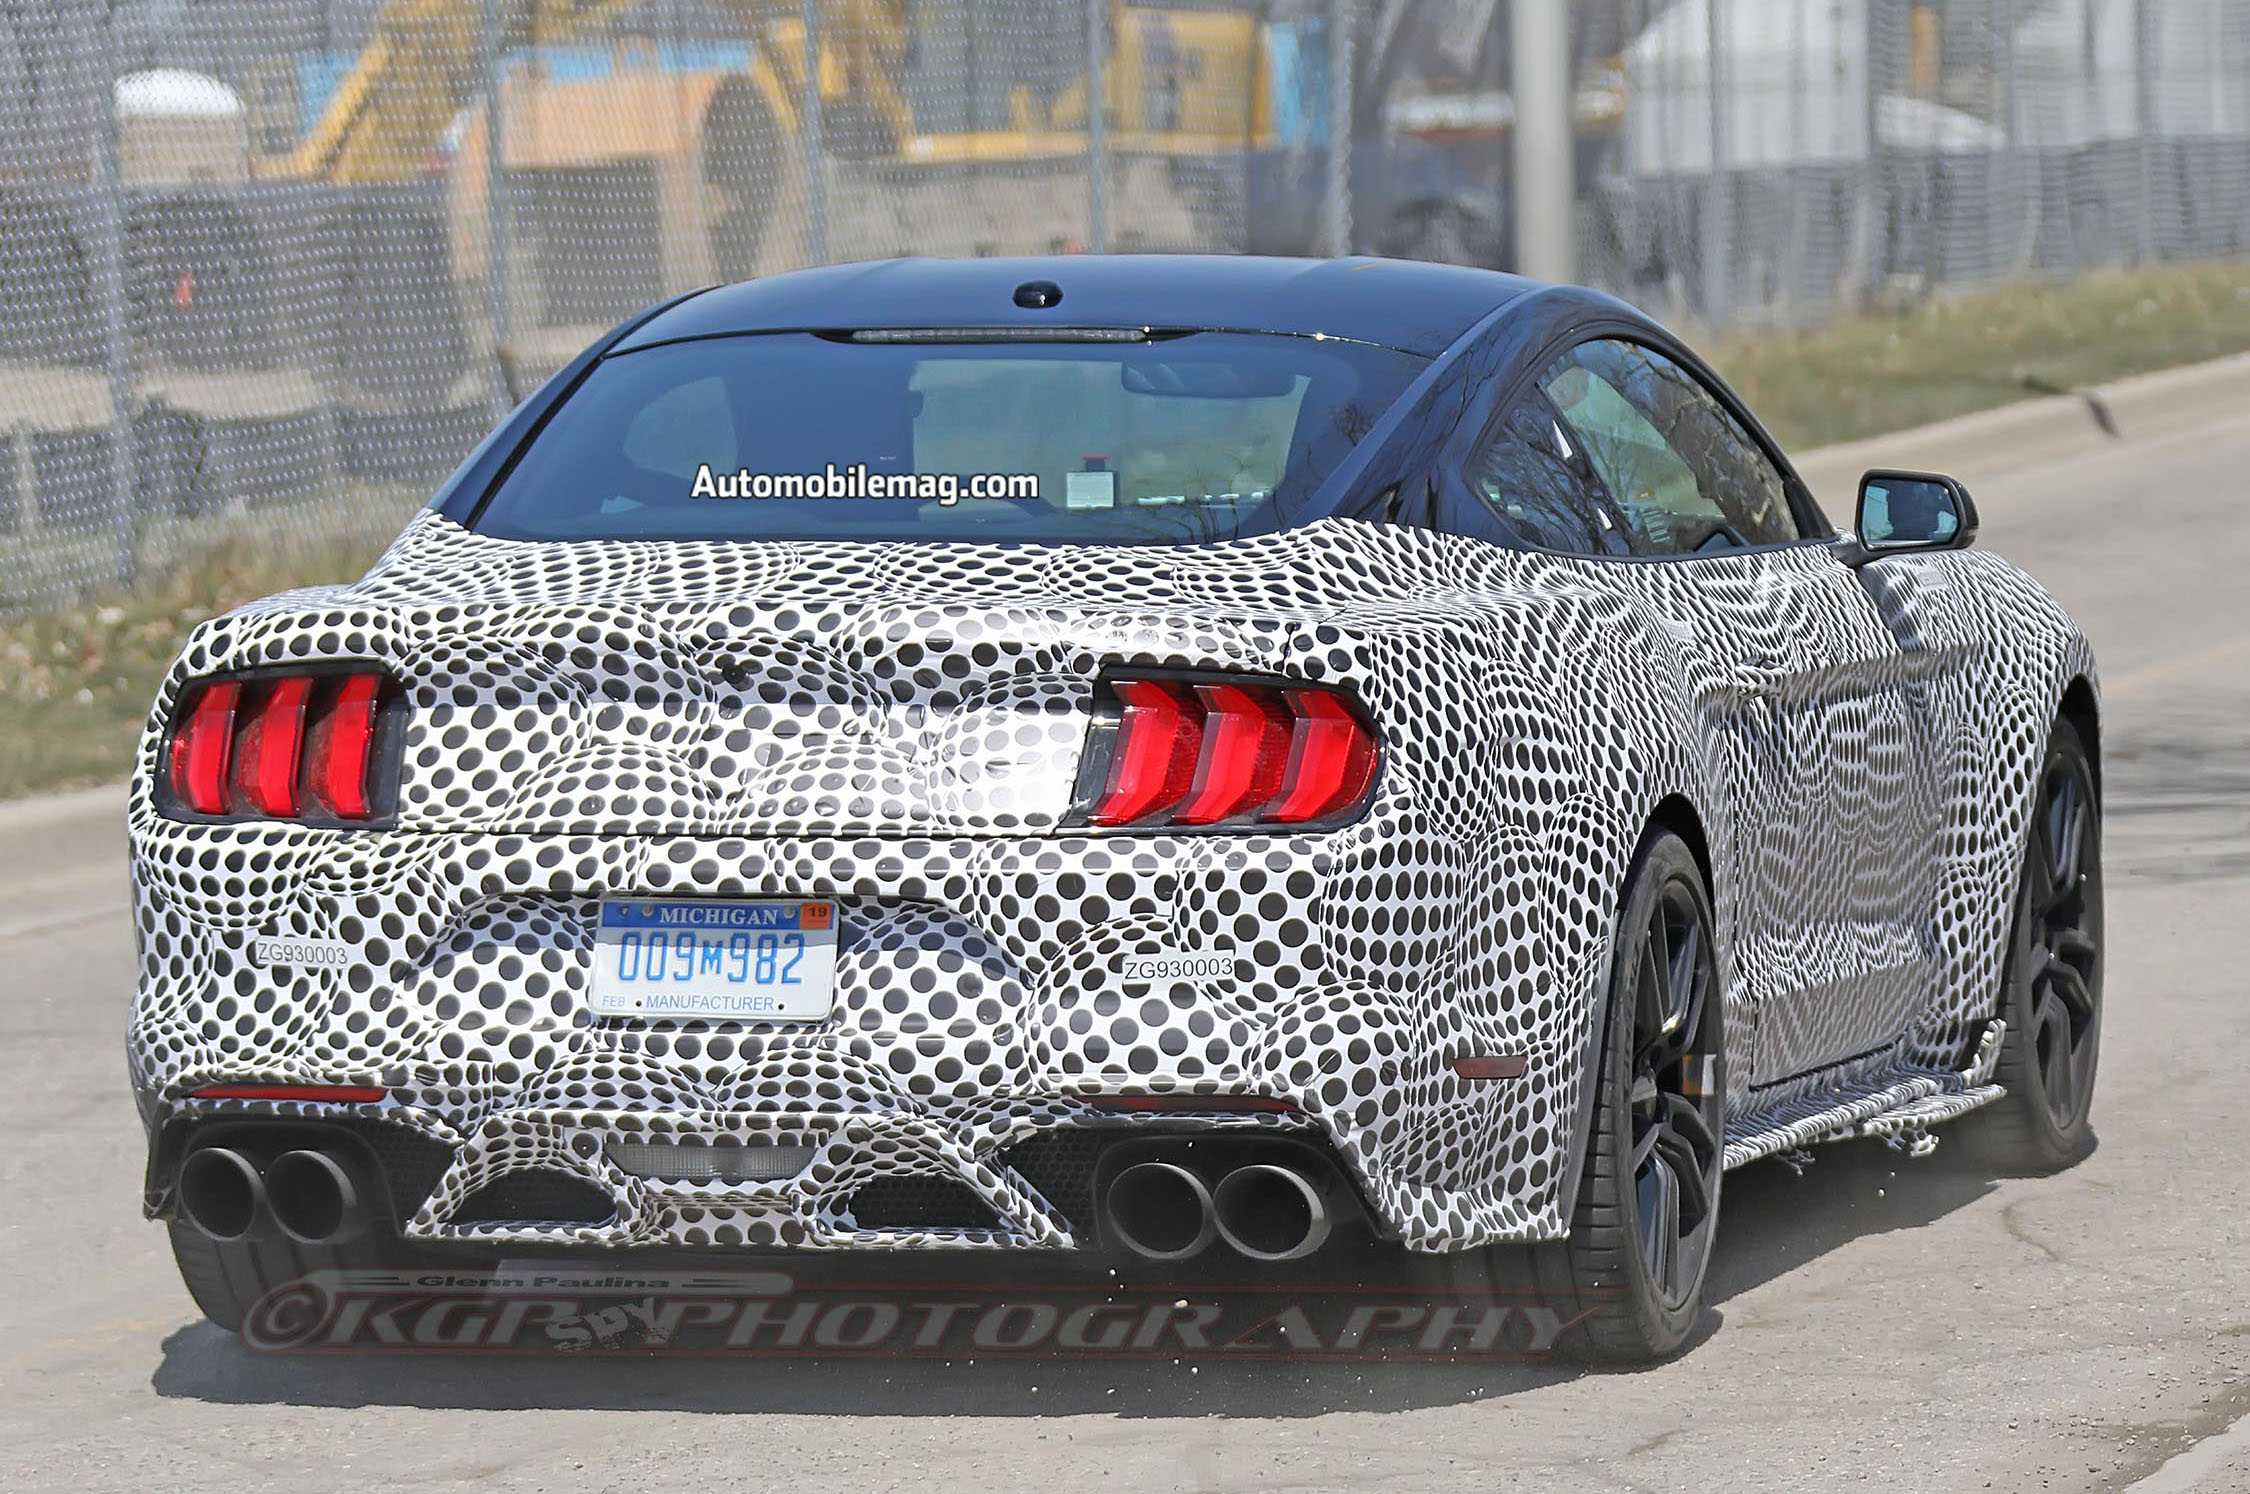 71 A 2020 The Spy Shots Ford Mustang Svt Gt 500 New Concept